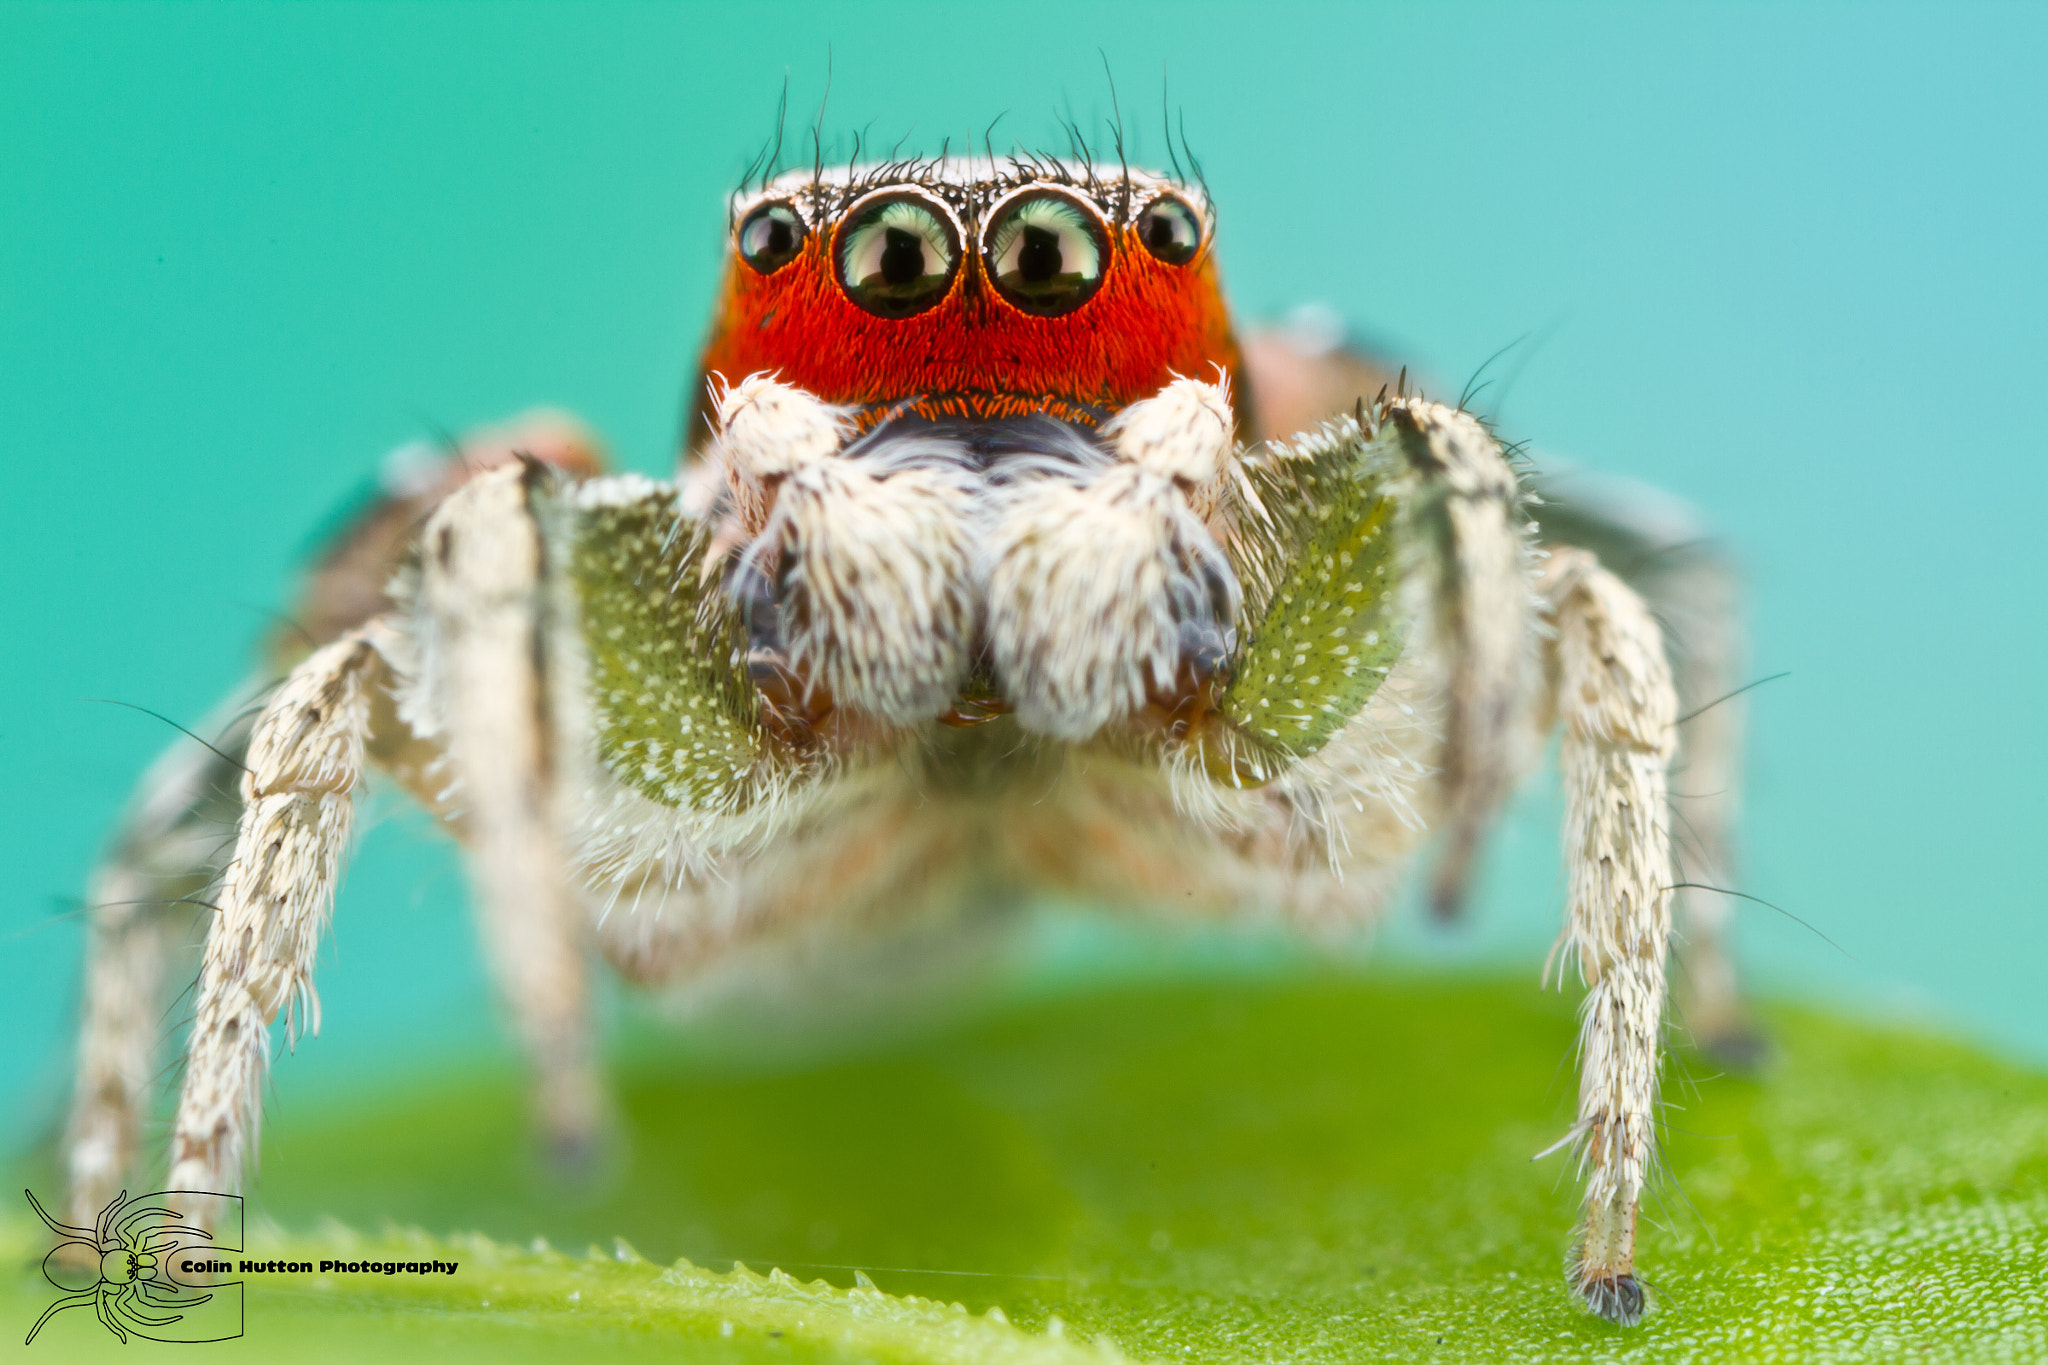 Photograph Habronattus pyrrithrix by Colin Hutton on 500px